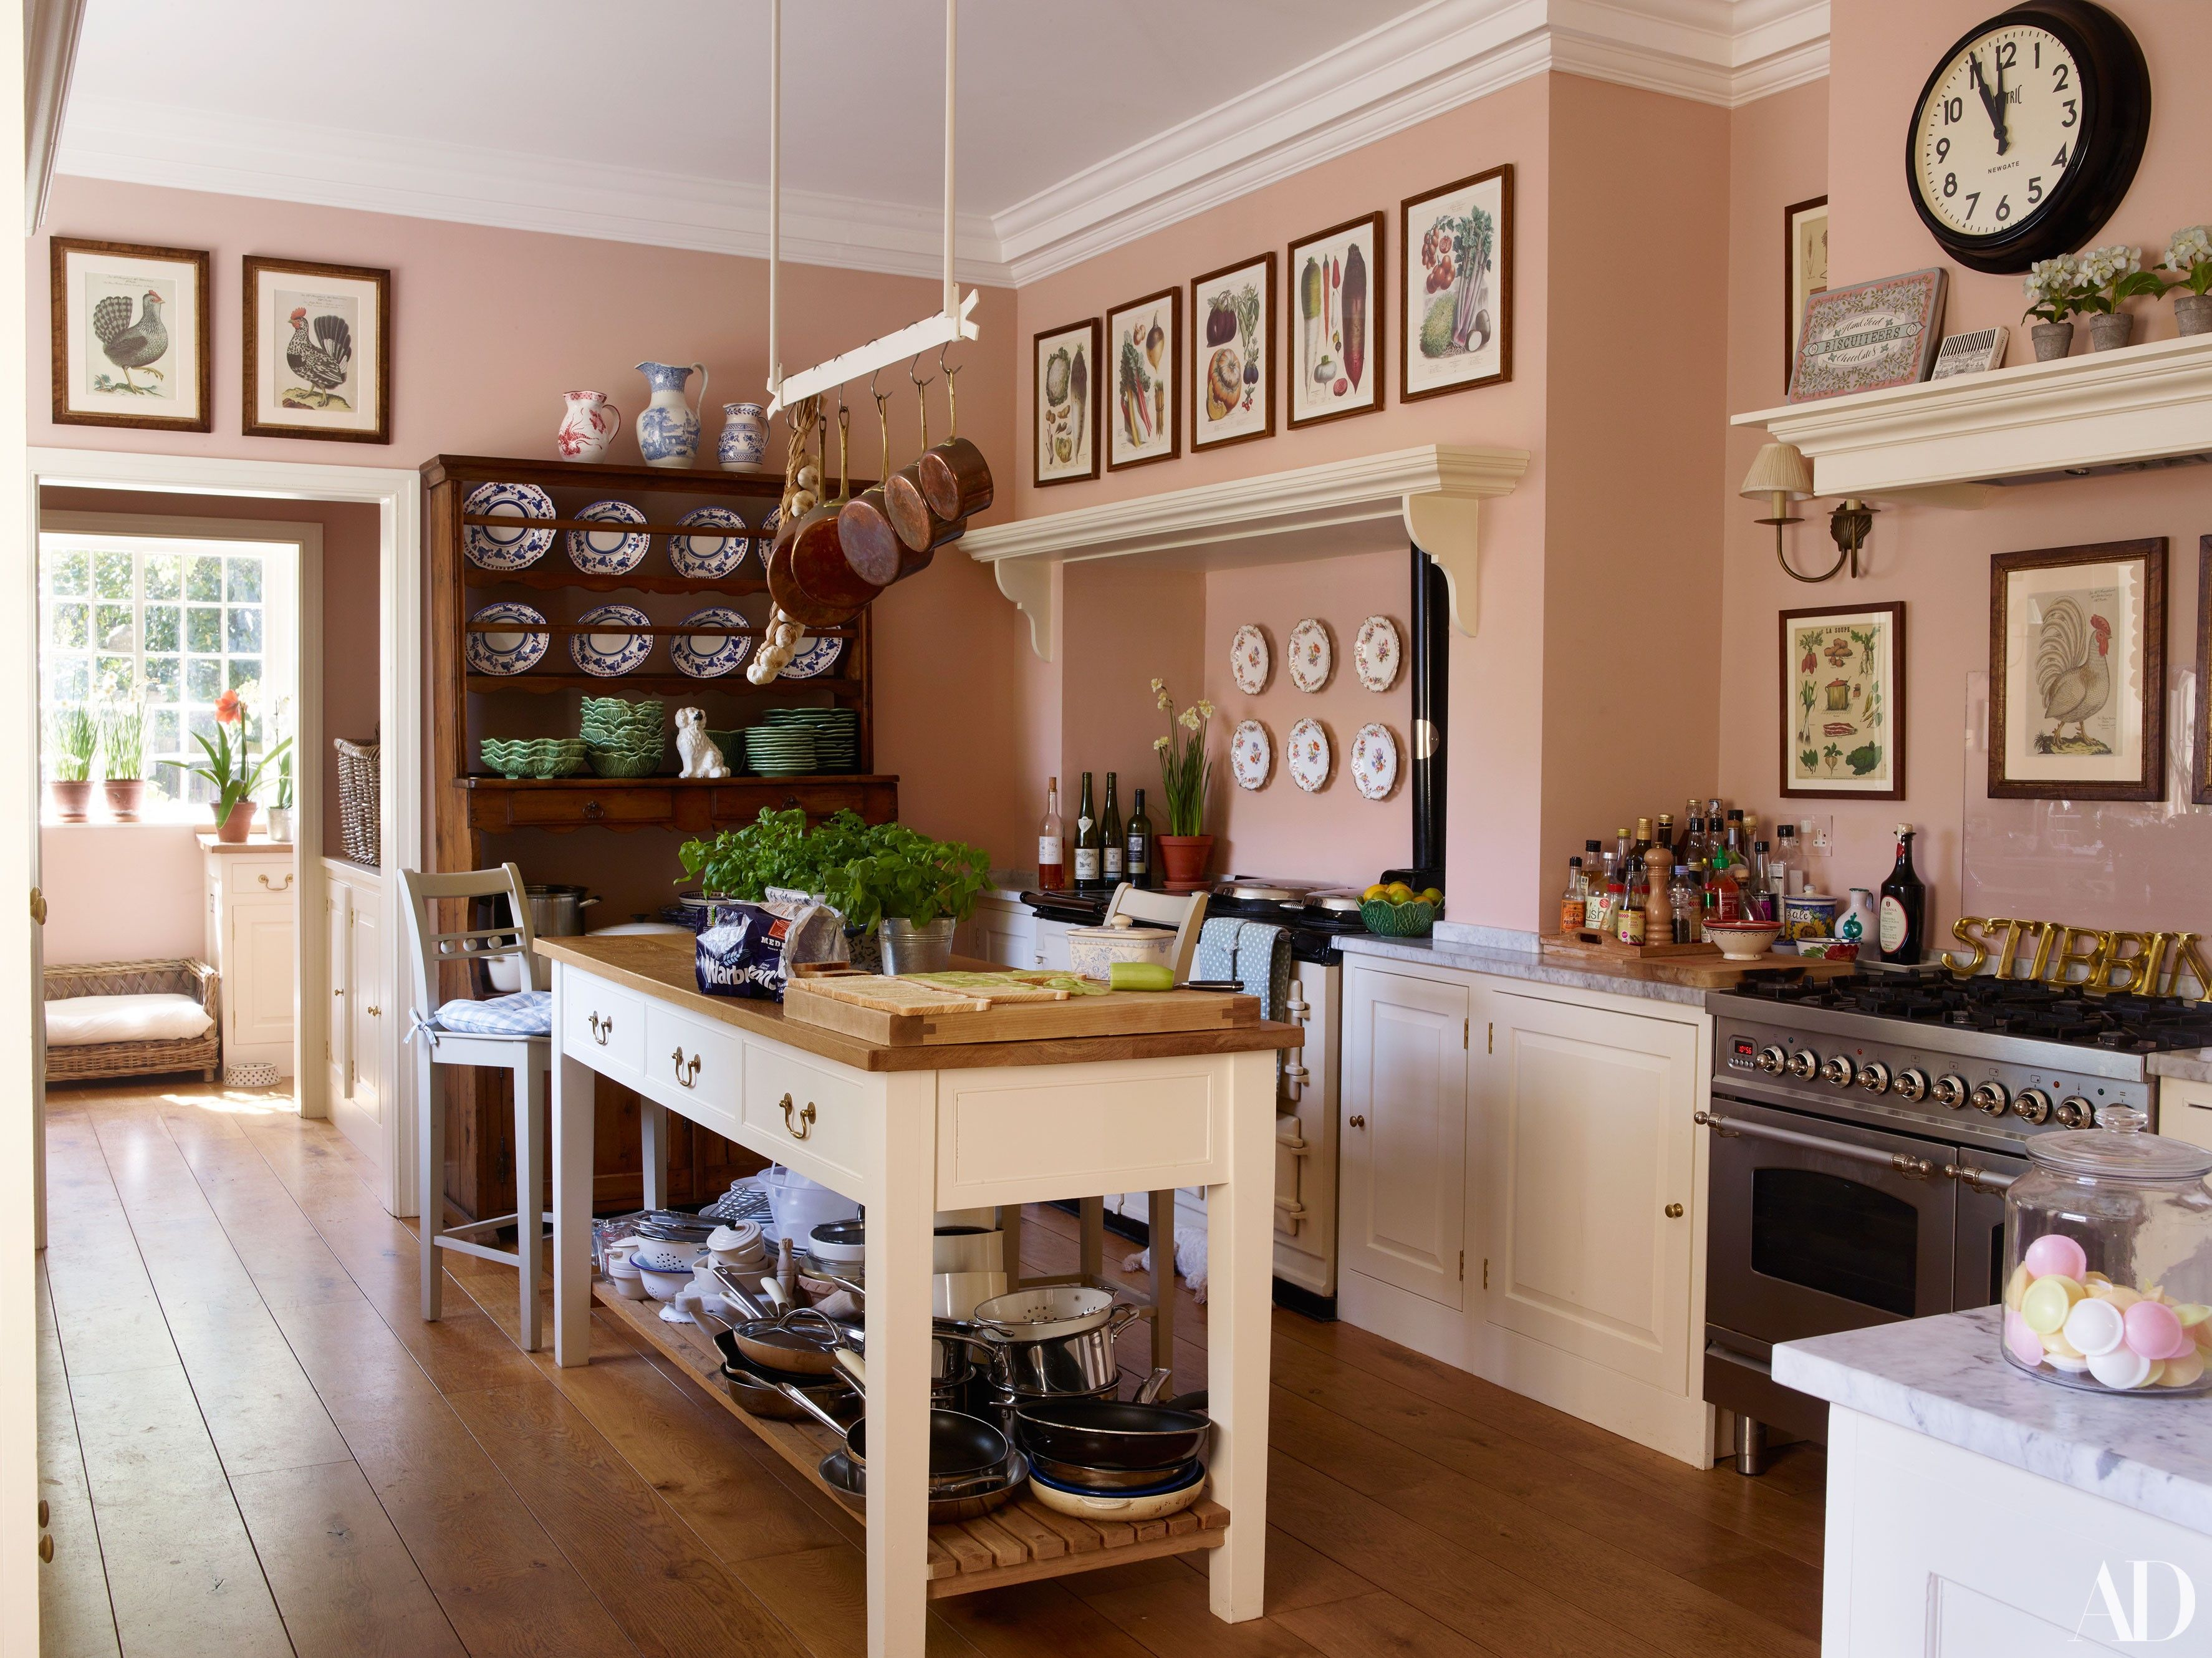 Stunning Country Kitchen Painted In Edward Bulmer Natural Paint Cuisse De Nymphe Emue Pink Ecopaint Naturalpaint Nonasties Gogreen